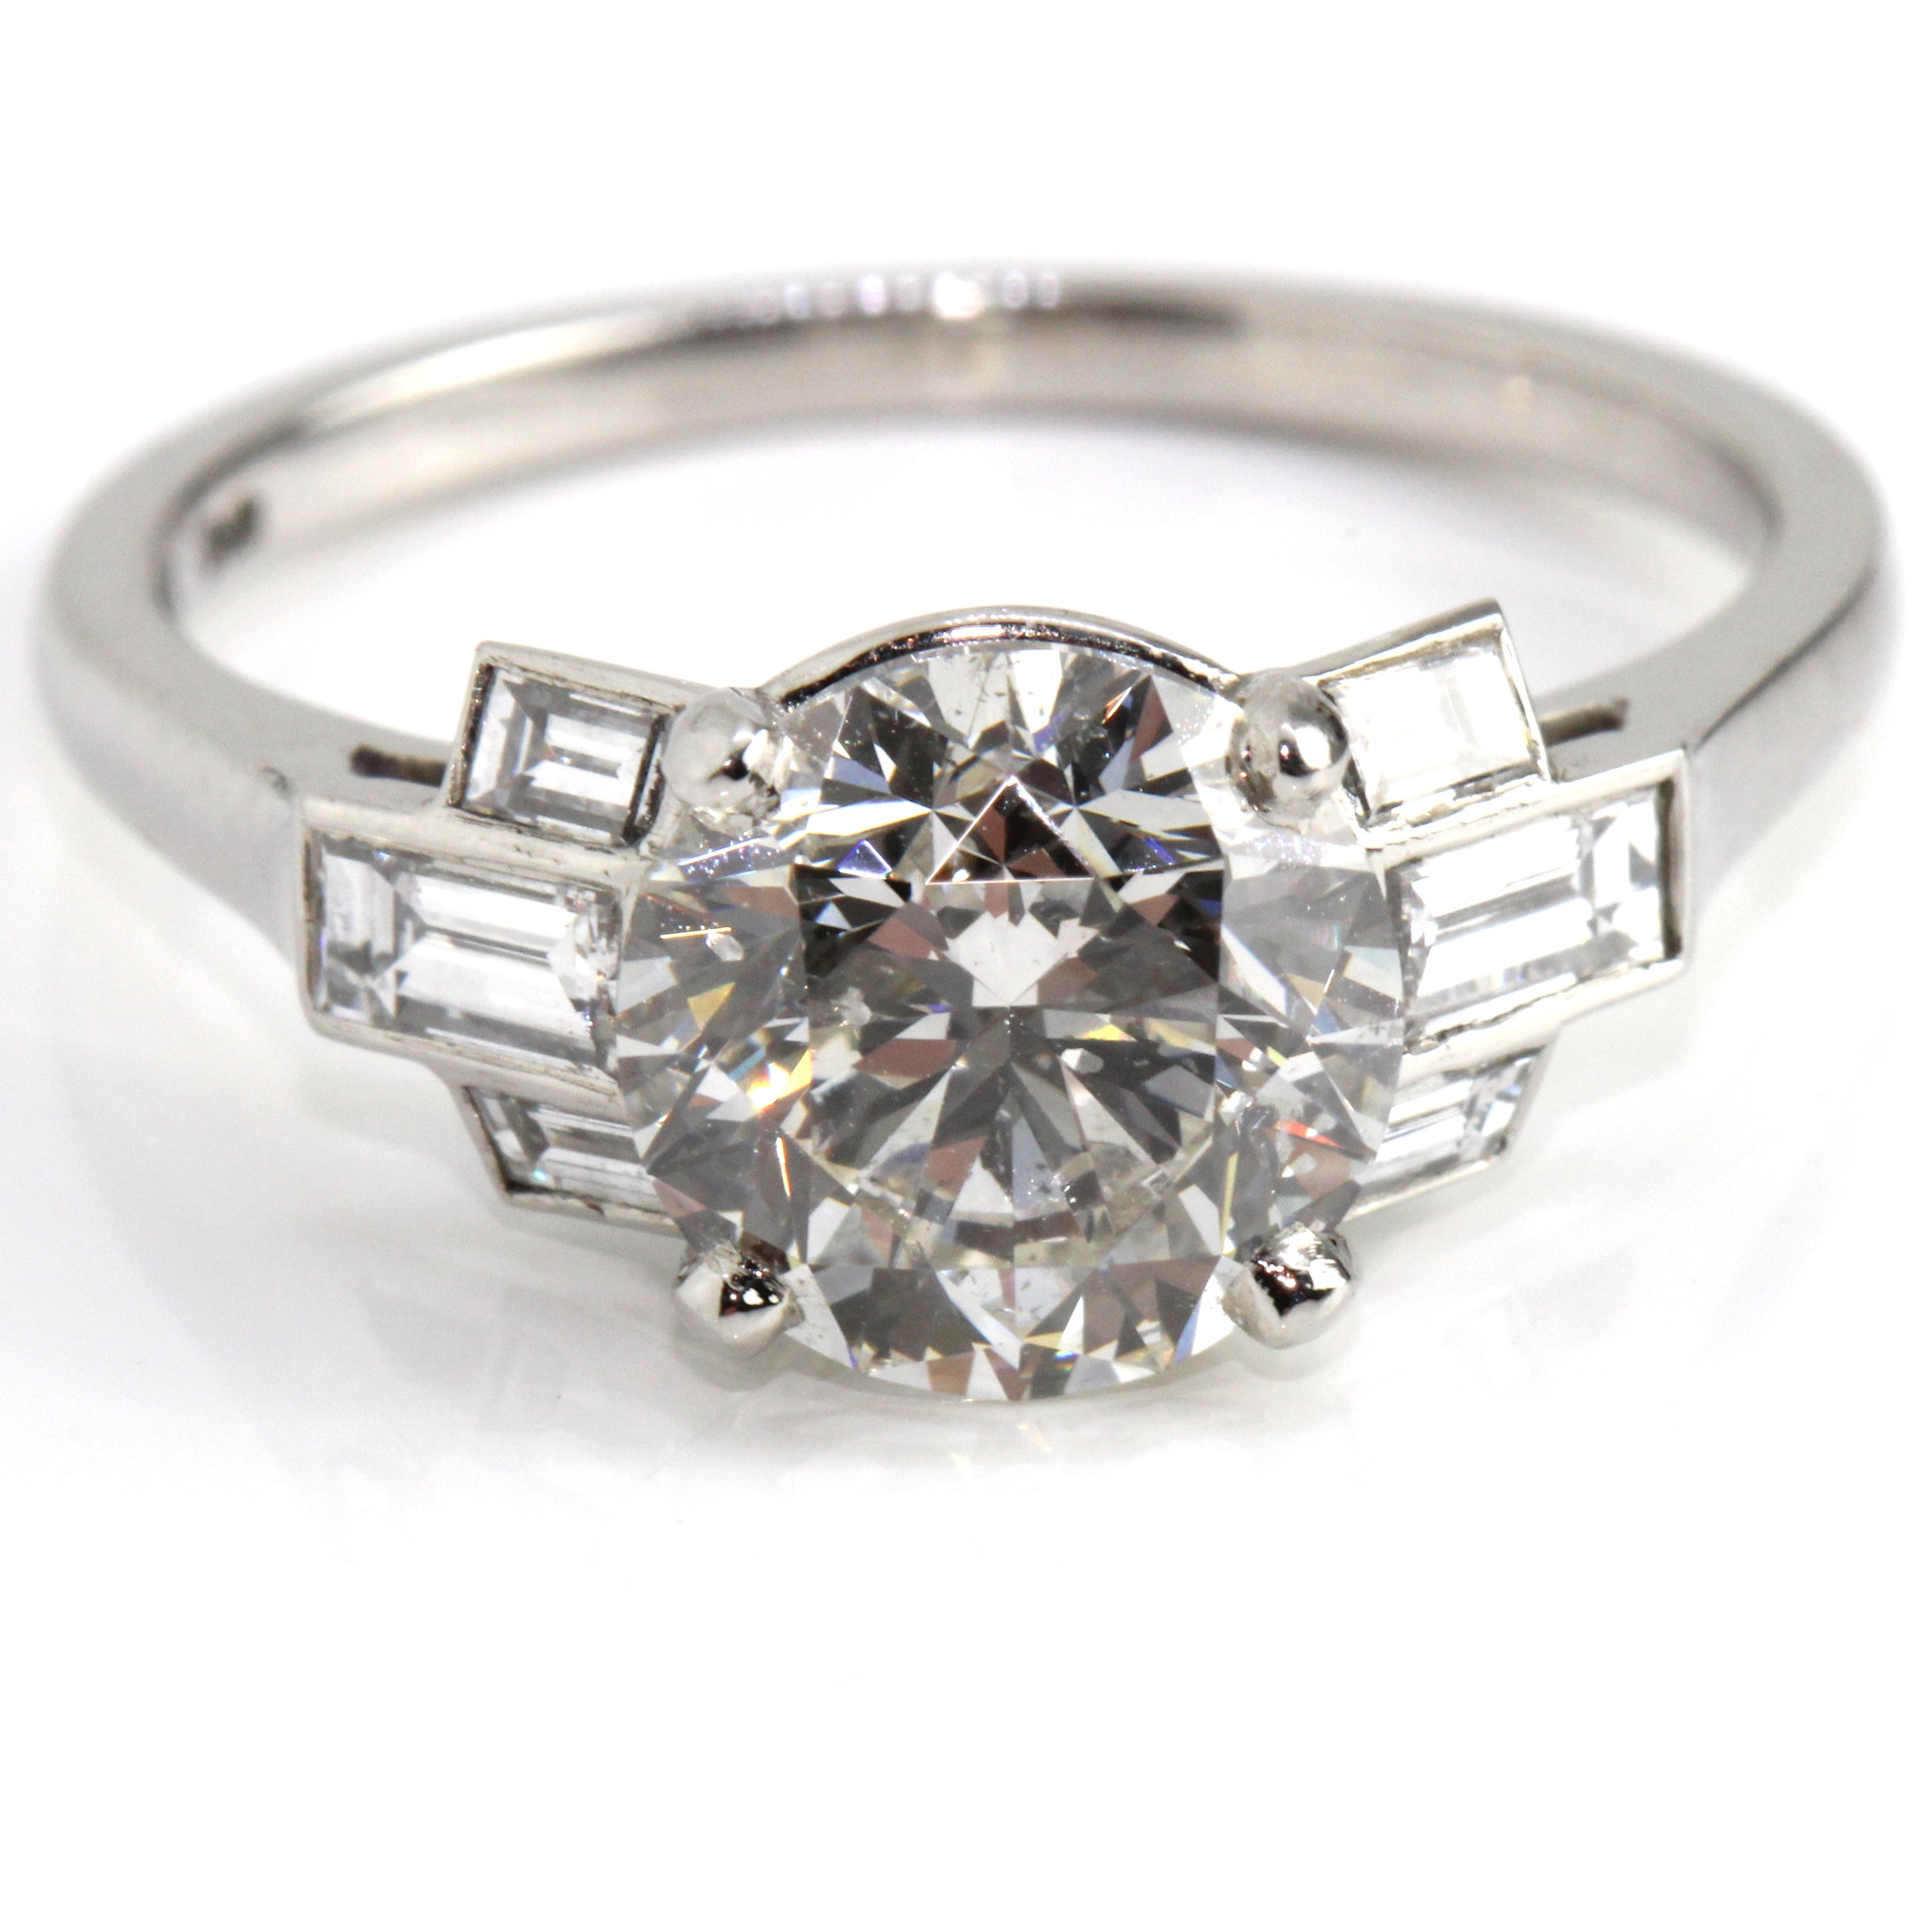 03ff614ad Campbell Platinum Art Deco Inspired Diamond Engagement Ring 2.42ct Campbell  Jewellers ...